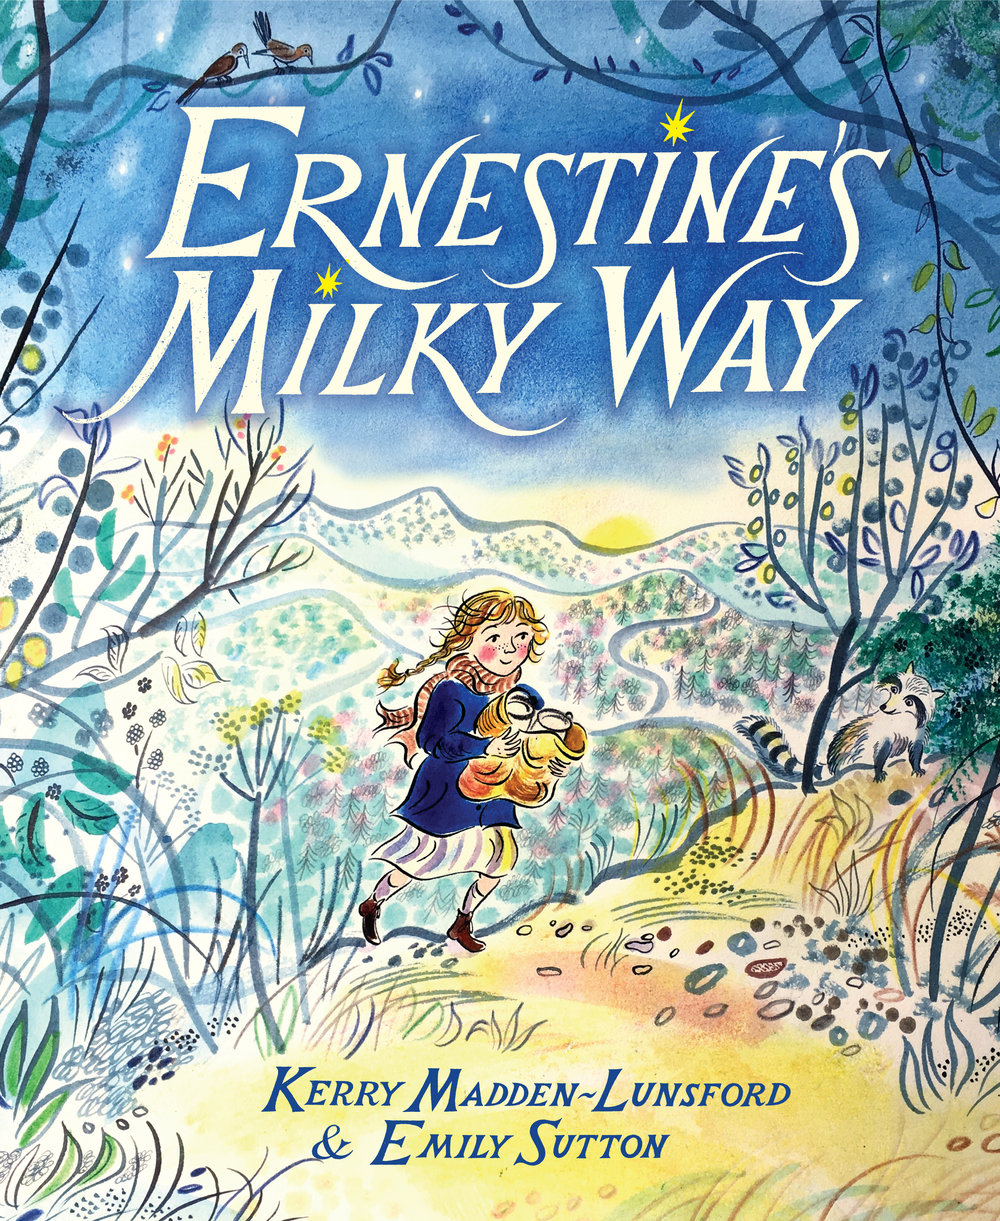 Awards | Reviews | Nominations - An empowering picture book set in the 1940s about a determined five-year-old girl who embarks on a journey to deliver milk to her neighbors in the holler.March 2019